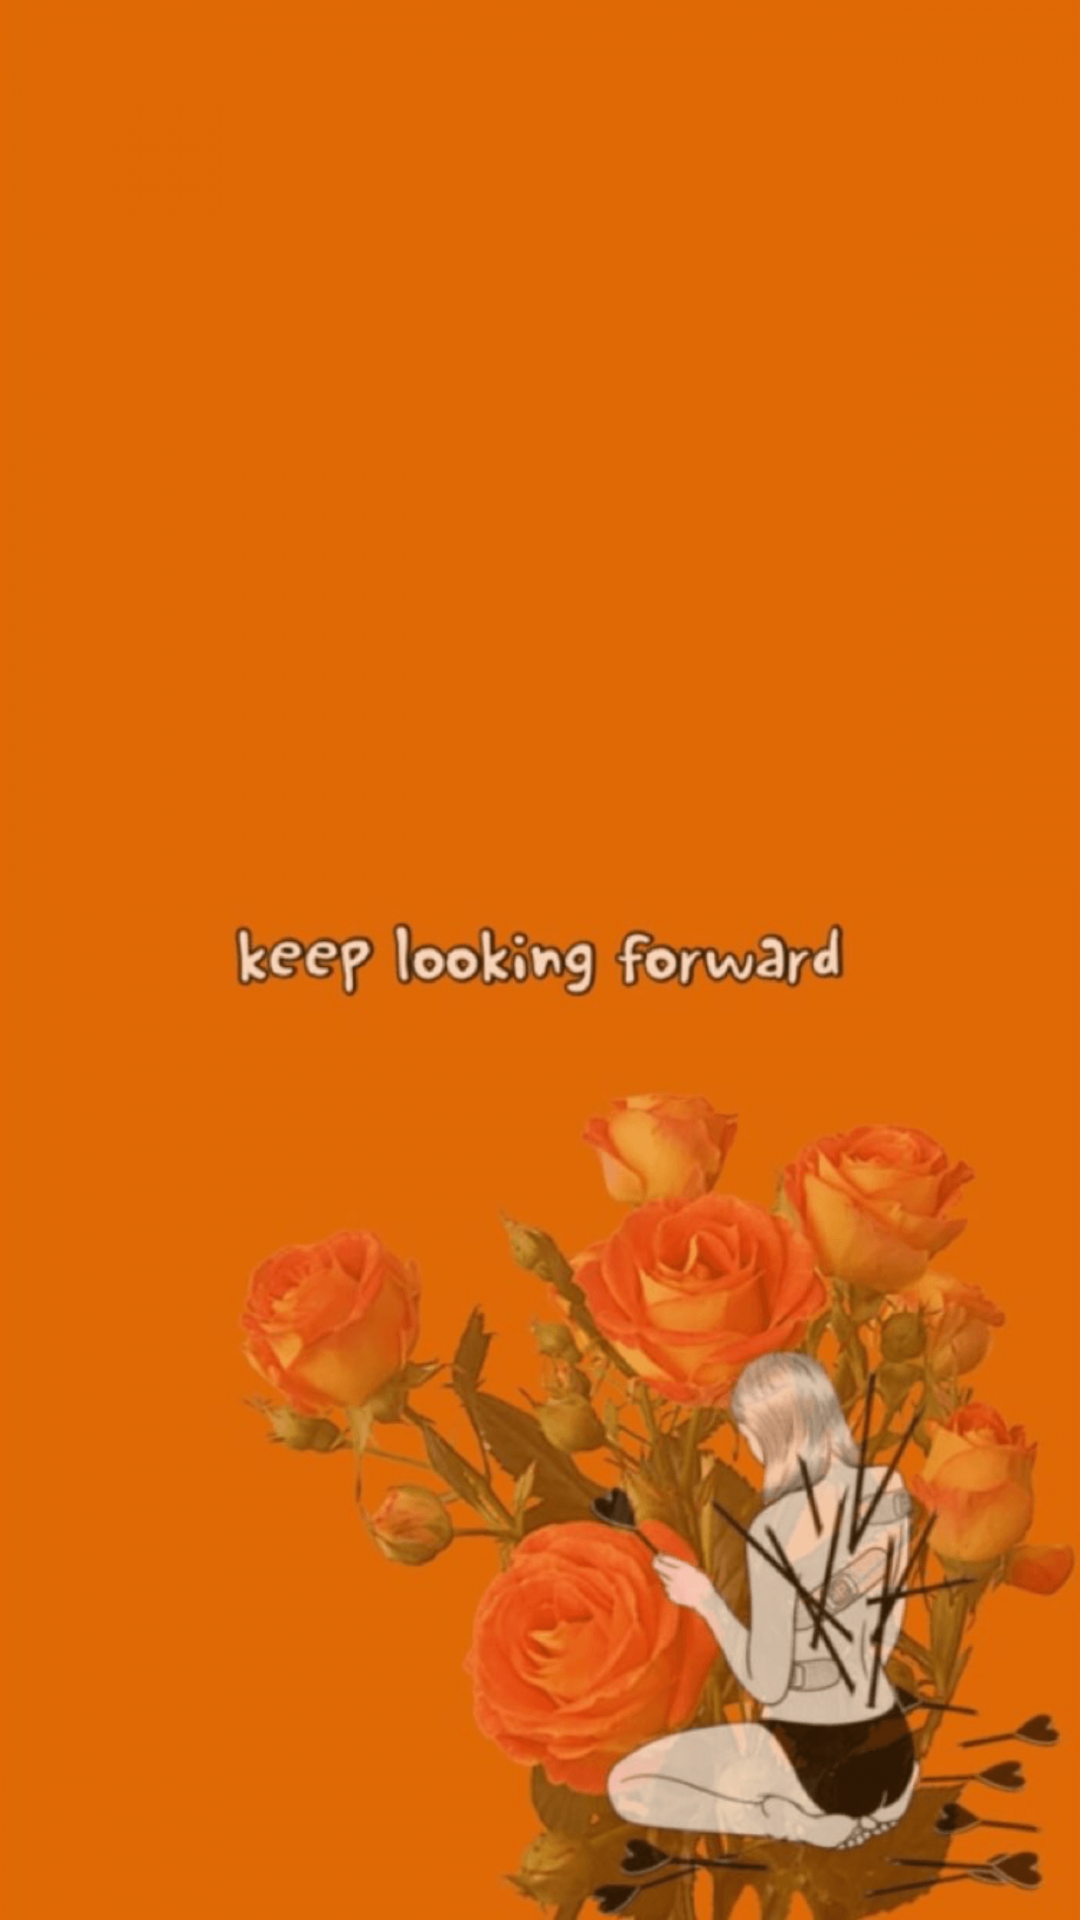 Orange Tumblr Aesthetic Orange Aesthetic 1080x1920 Download Hd Wallpaper Wallpapertip